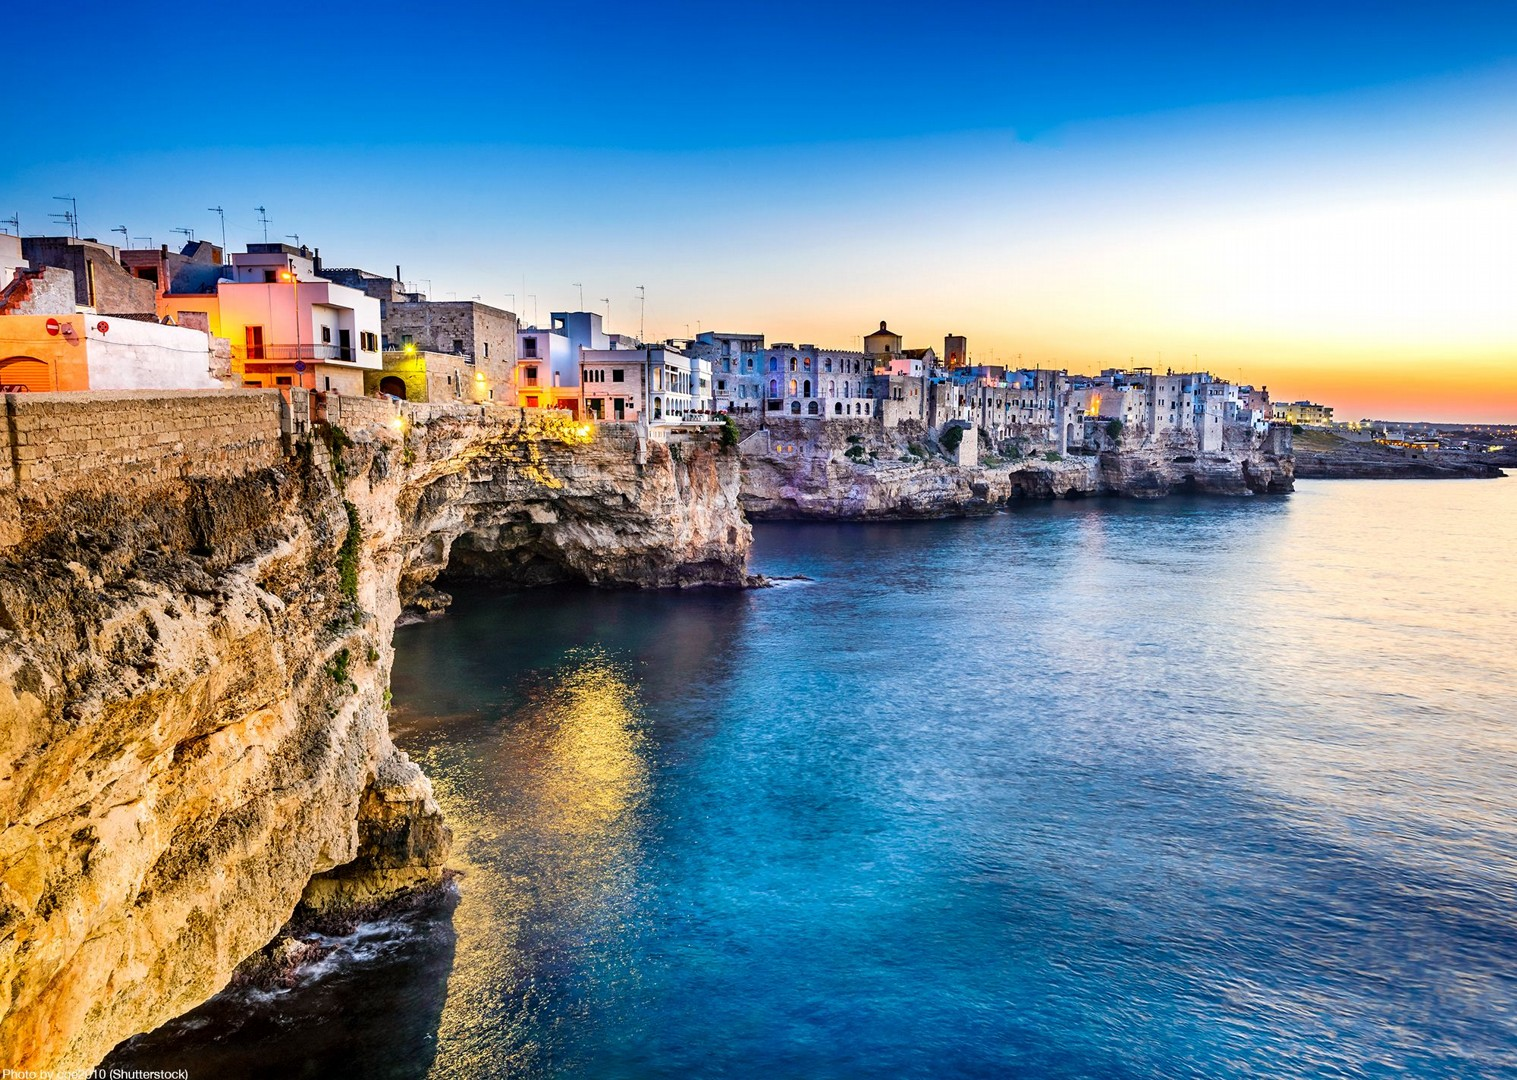 shutterstock_488694136.jpg - Italy - Puglia - Self-Guided Leisure Cycling Holiday - Italia Leisure and Family Cycling